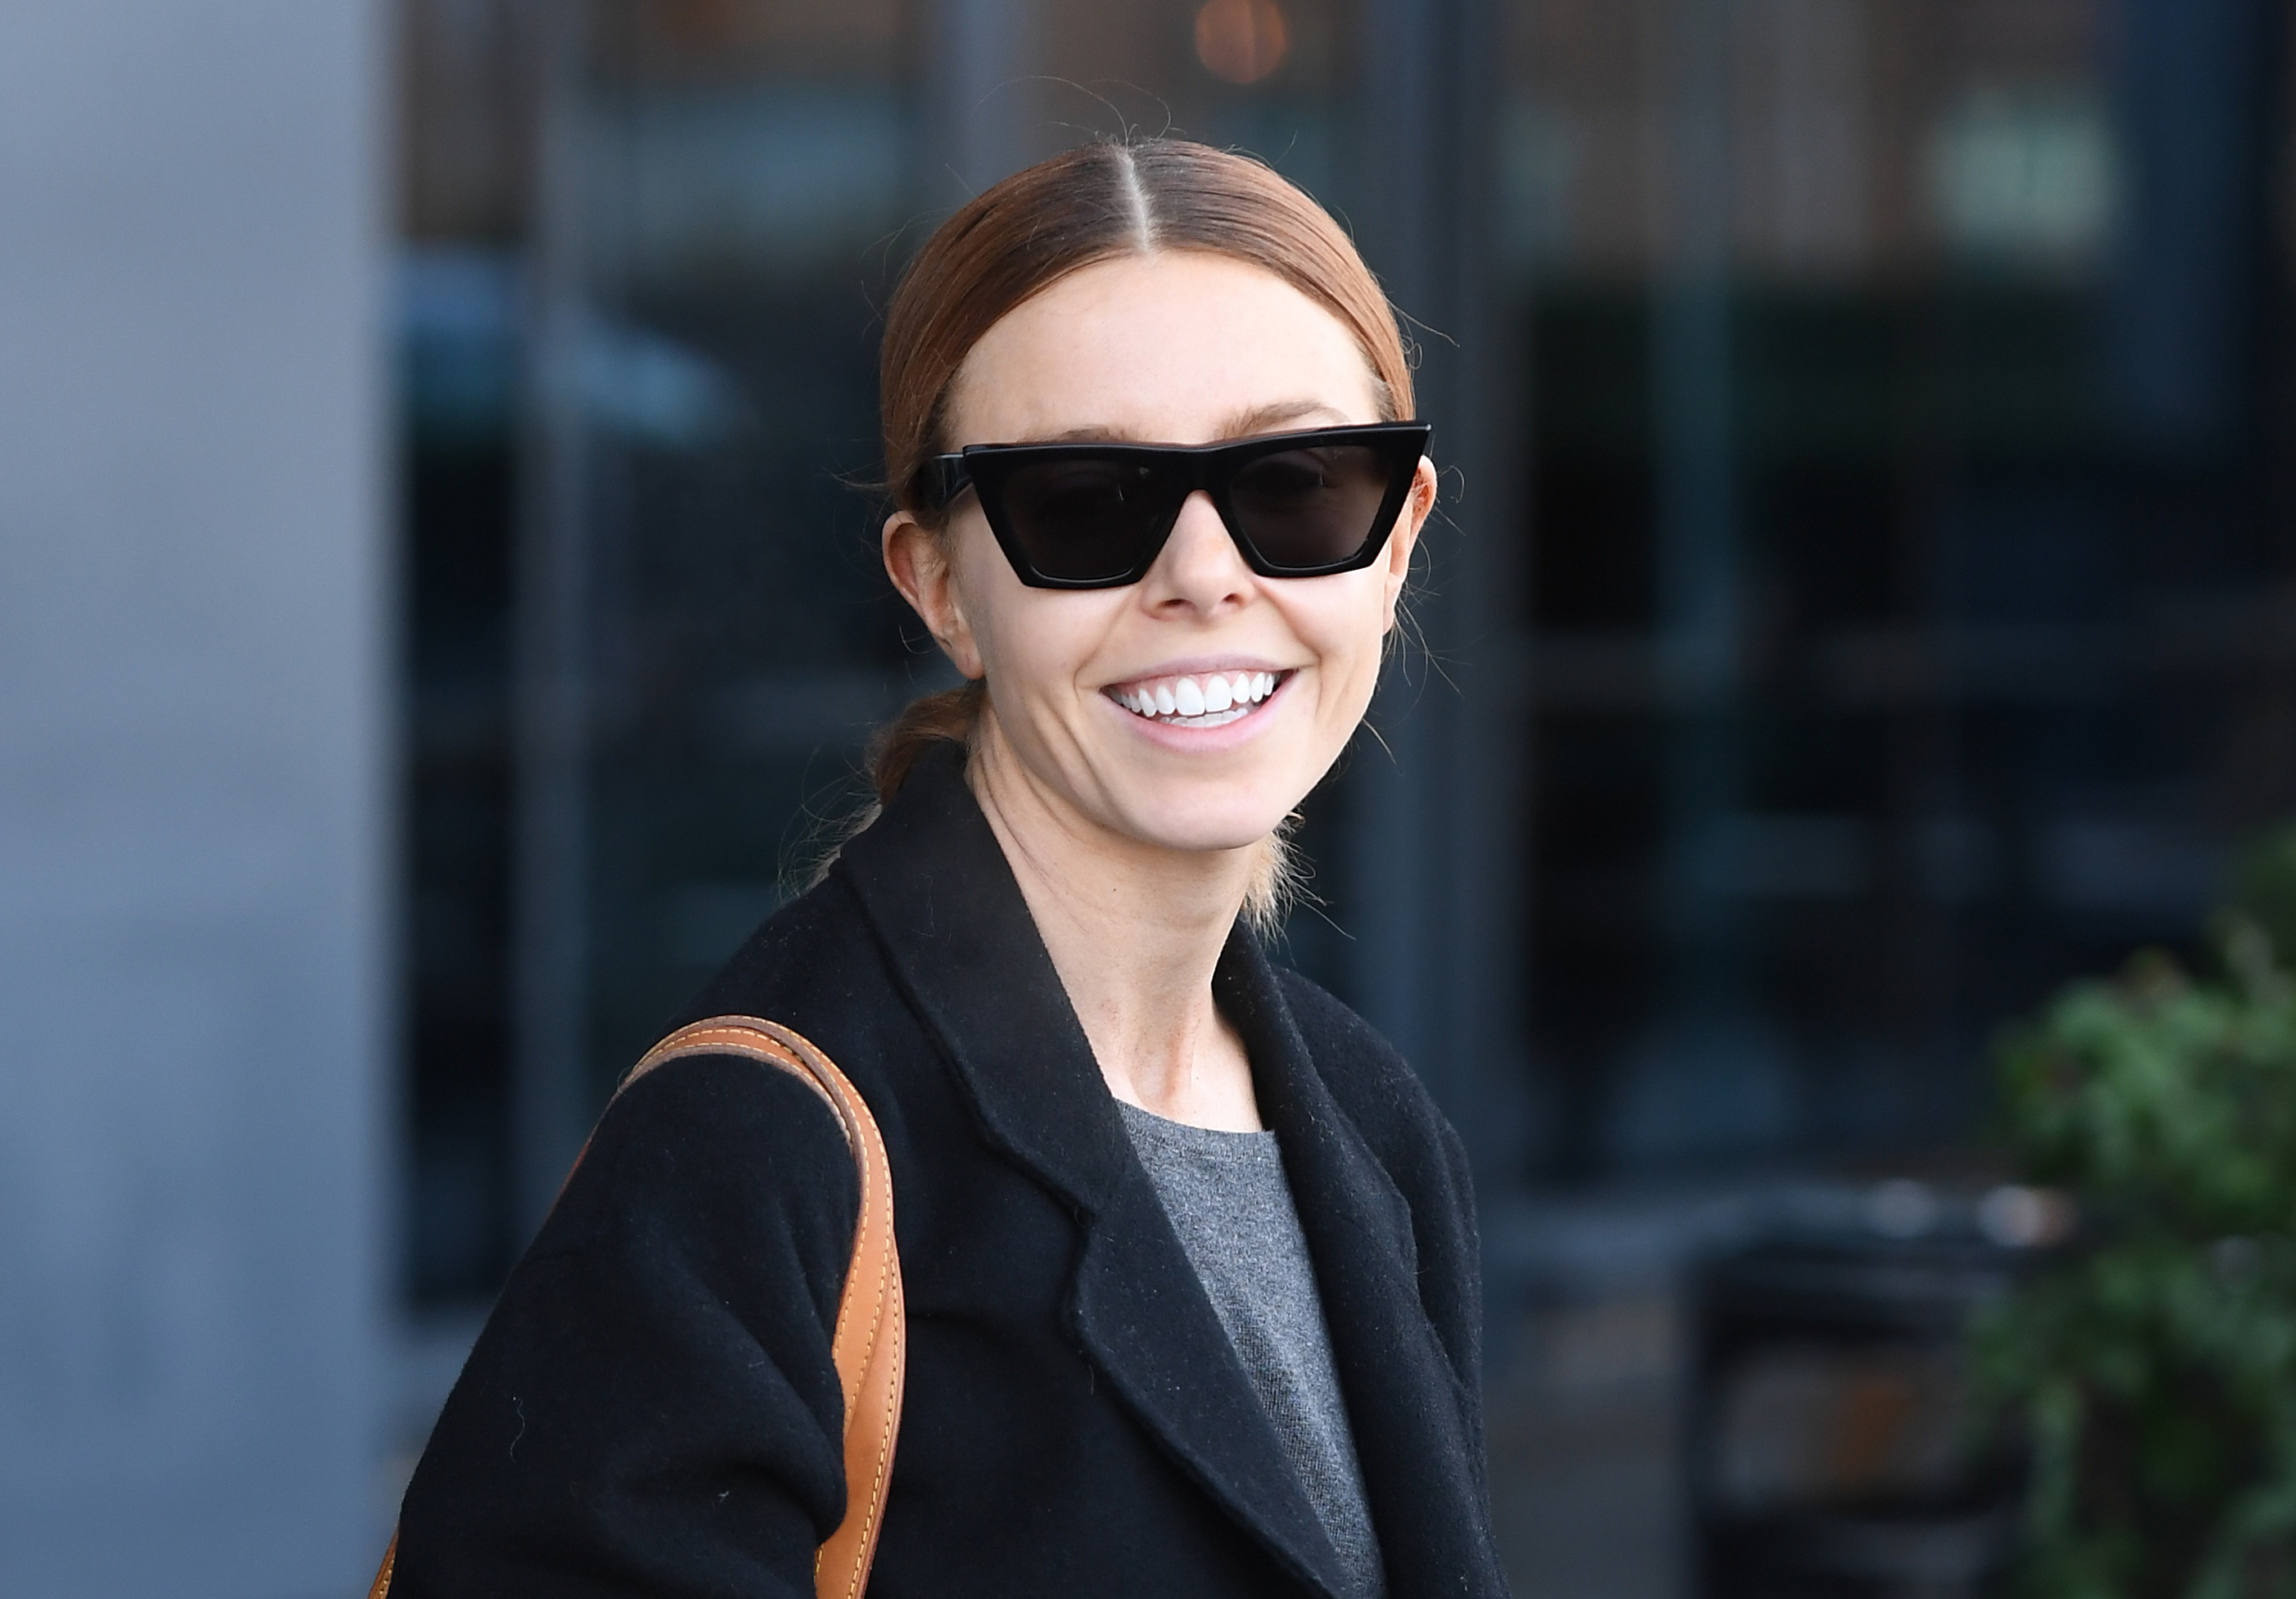 Stacey Dooley leaves the Village Hotel Club Watford the morning after winning the Strictly Come Dancing 2018 final. (Photo by Joe Giddens/PA Images via Getty Images)